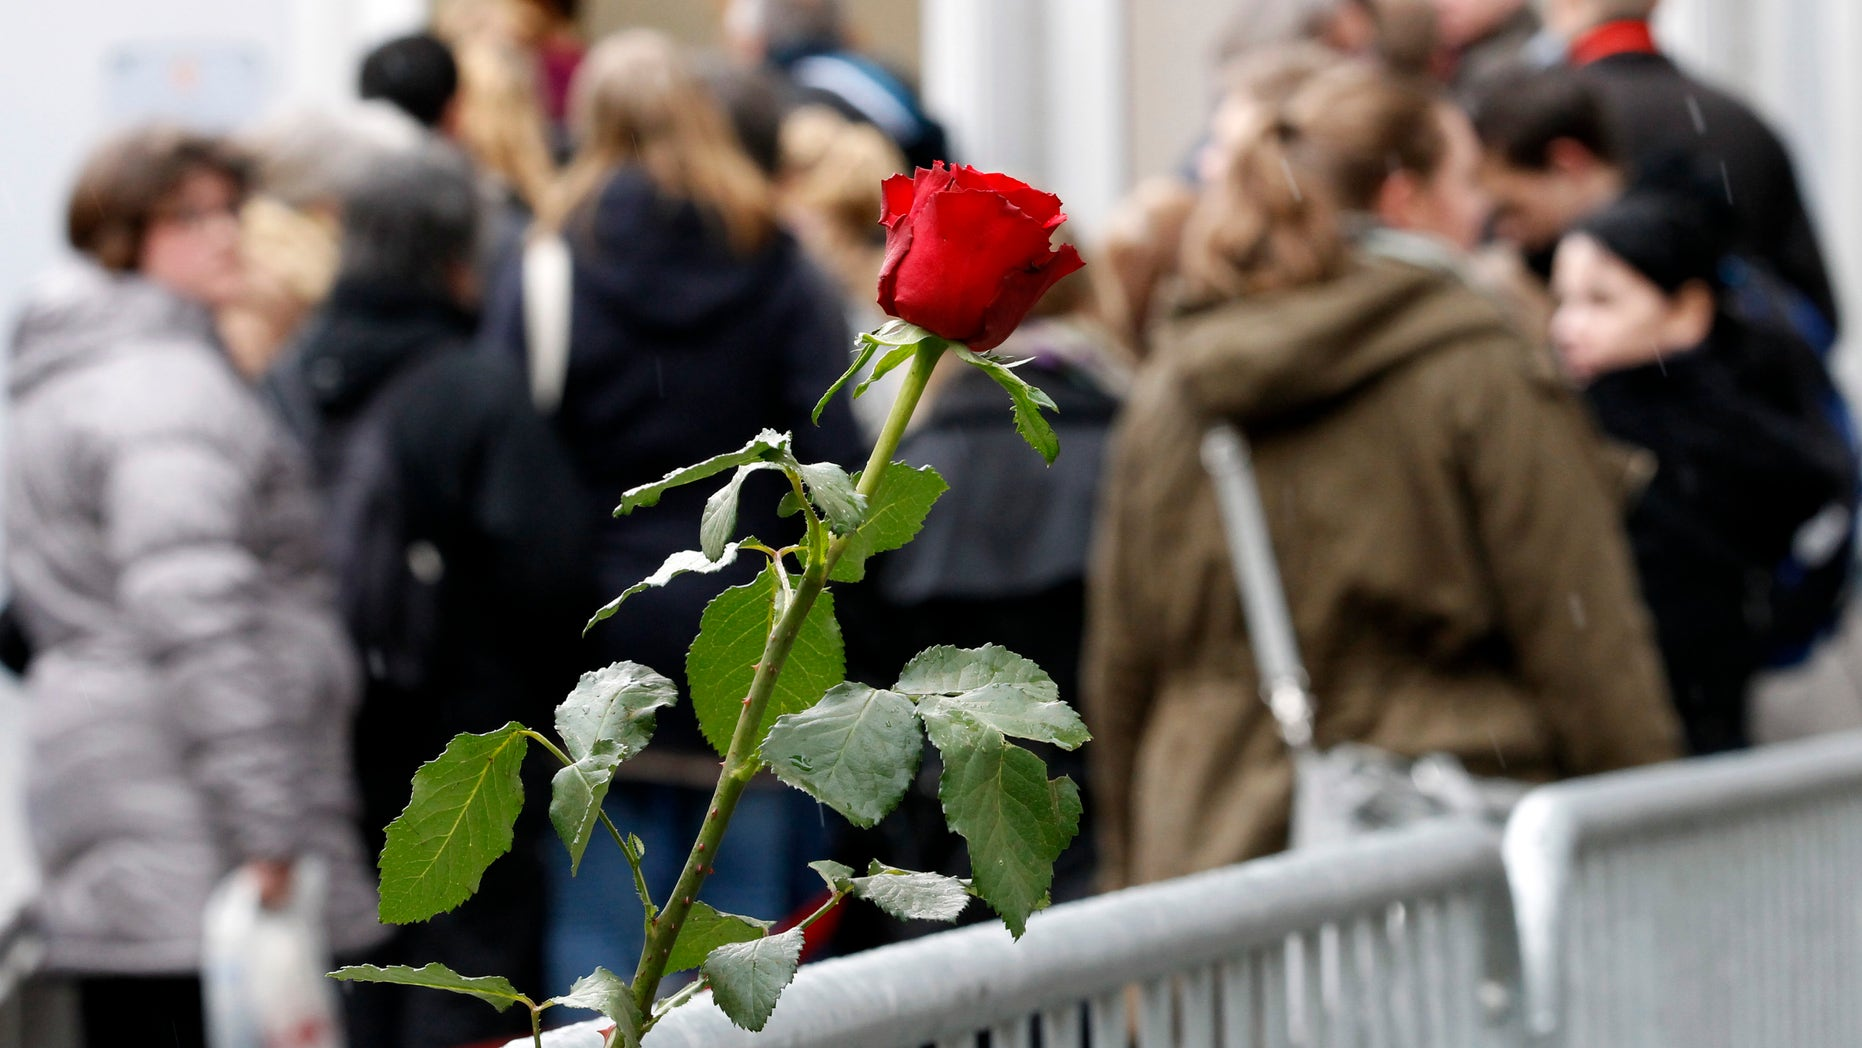 Visitors and survivors queue to enter the court where defendant Norwegian mass killer Anders Behring Breivik face the second day of the terrorism and murder trial a in Oslo April 17, 2012. Breivik, 33, has admitted setting off a car bomb that killed eight people at government headquarters in Oslo last July, then killing 69 in a shooting spree at a summer youth camp organised by the ruling Labour Party. The trial is scheduled to last 10 weeks, during which the court must rule on both his guilt, and his sanity.       REUTERS/Fabrizio Bensch (NORWAY - Tags: CRIME LAW) - RTR30U57